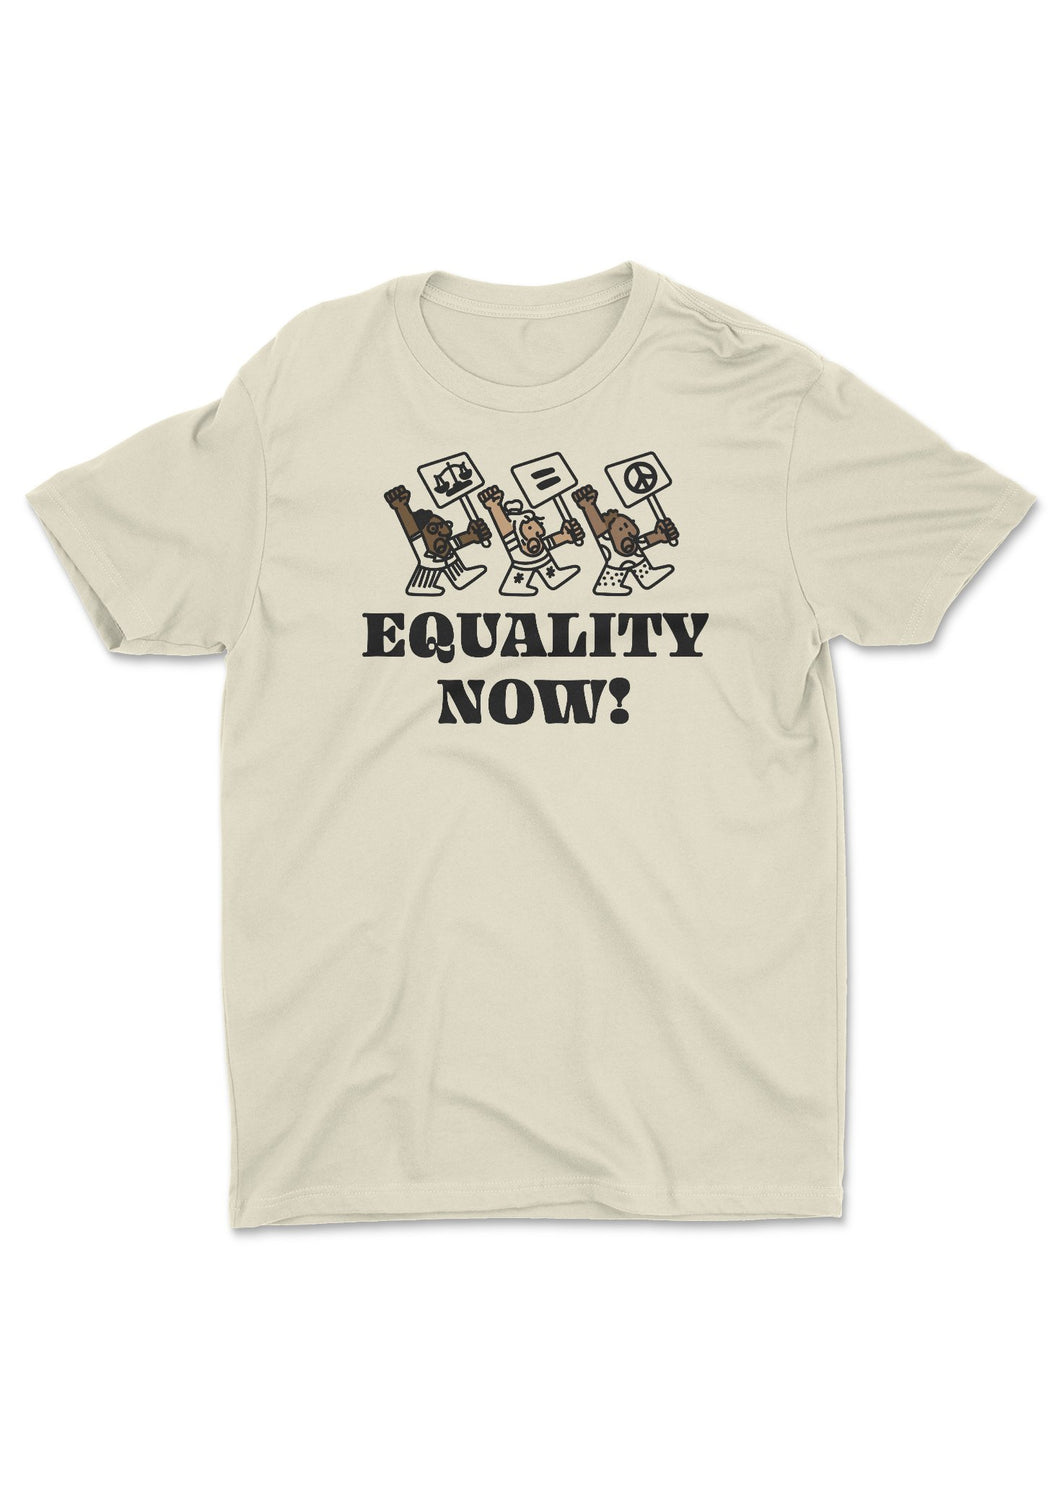 Equality Now Tee - Tigertree